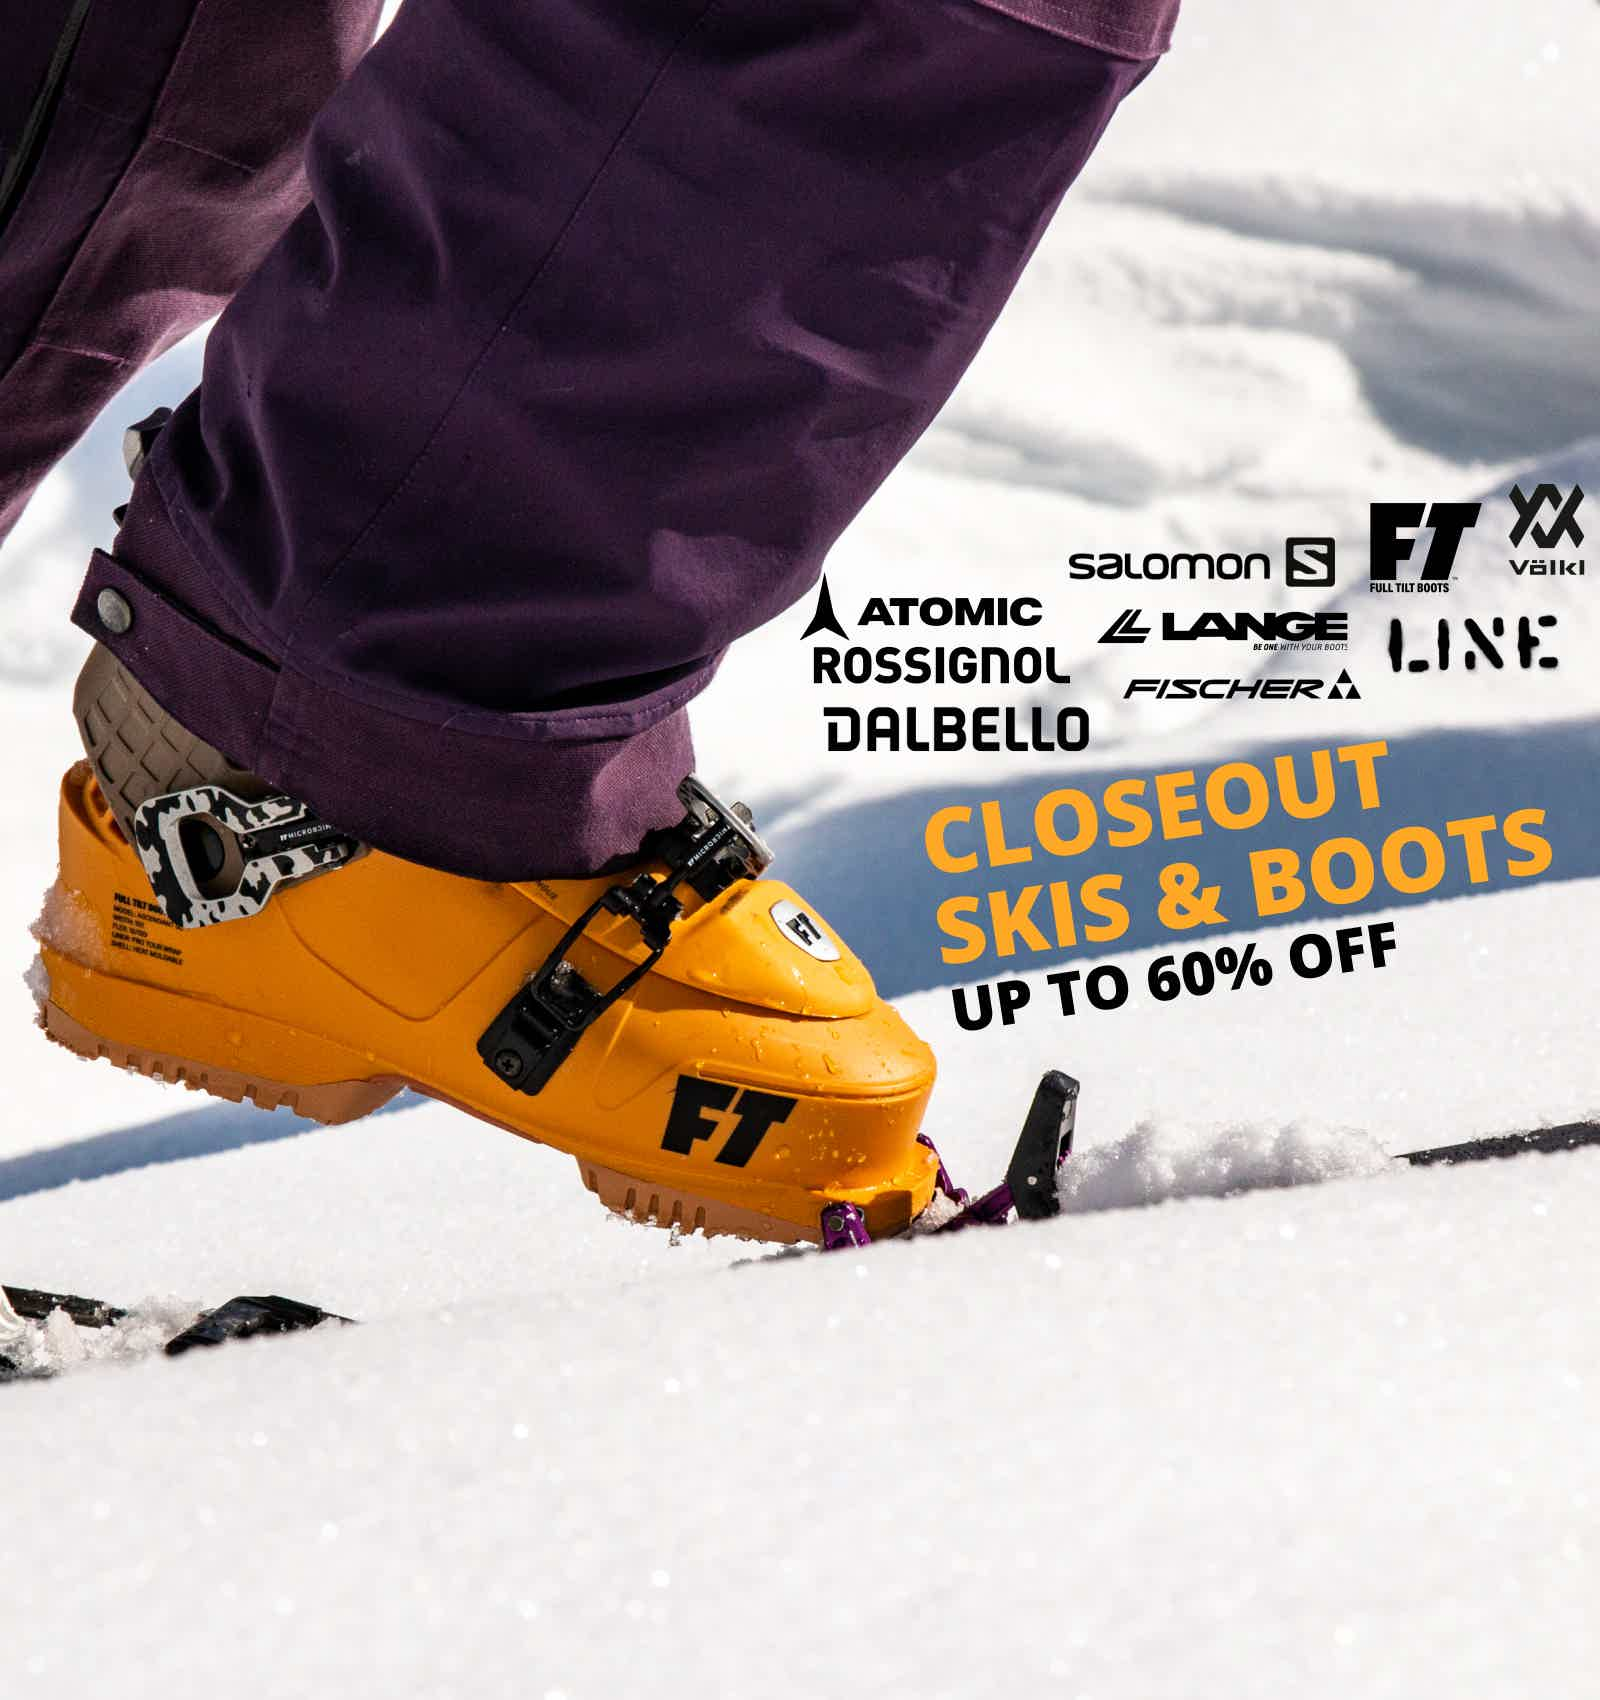 Closeout Skis & Boots